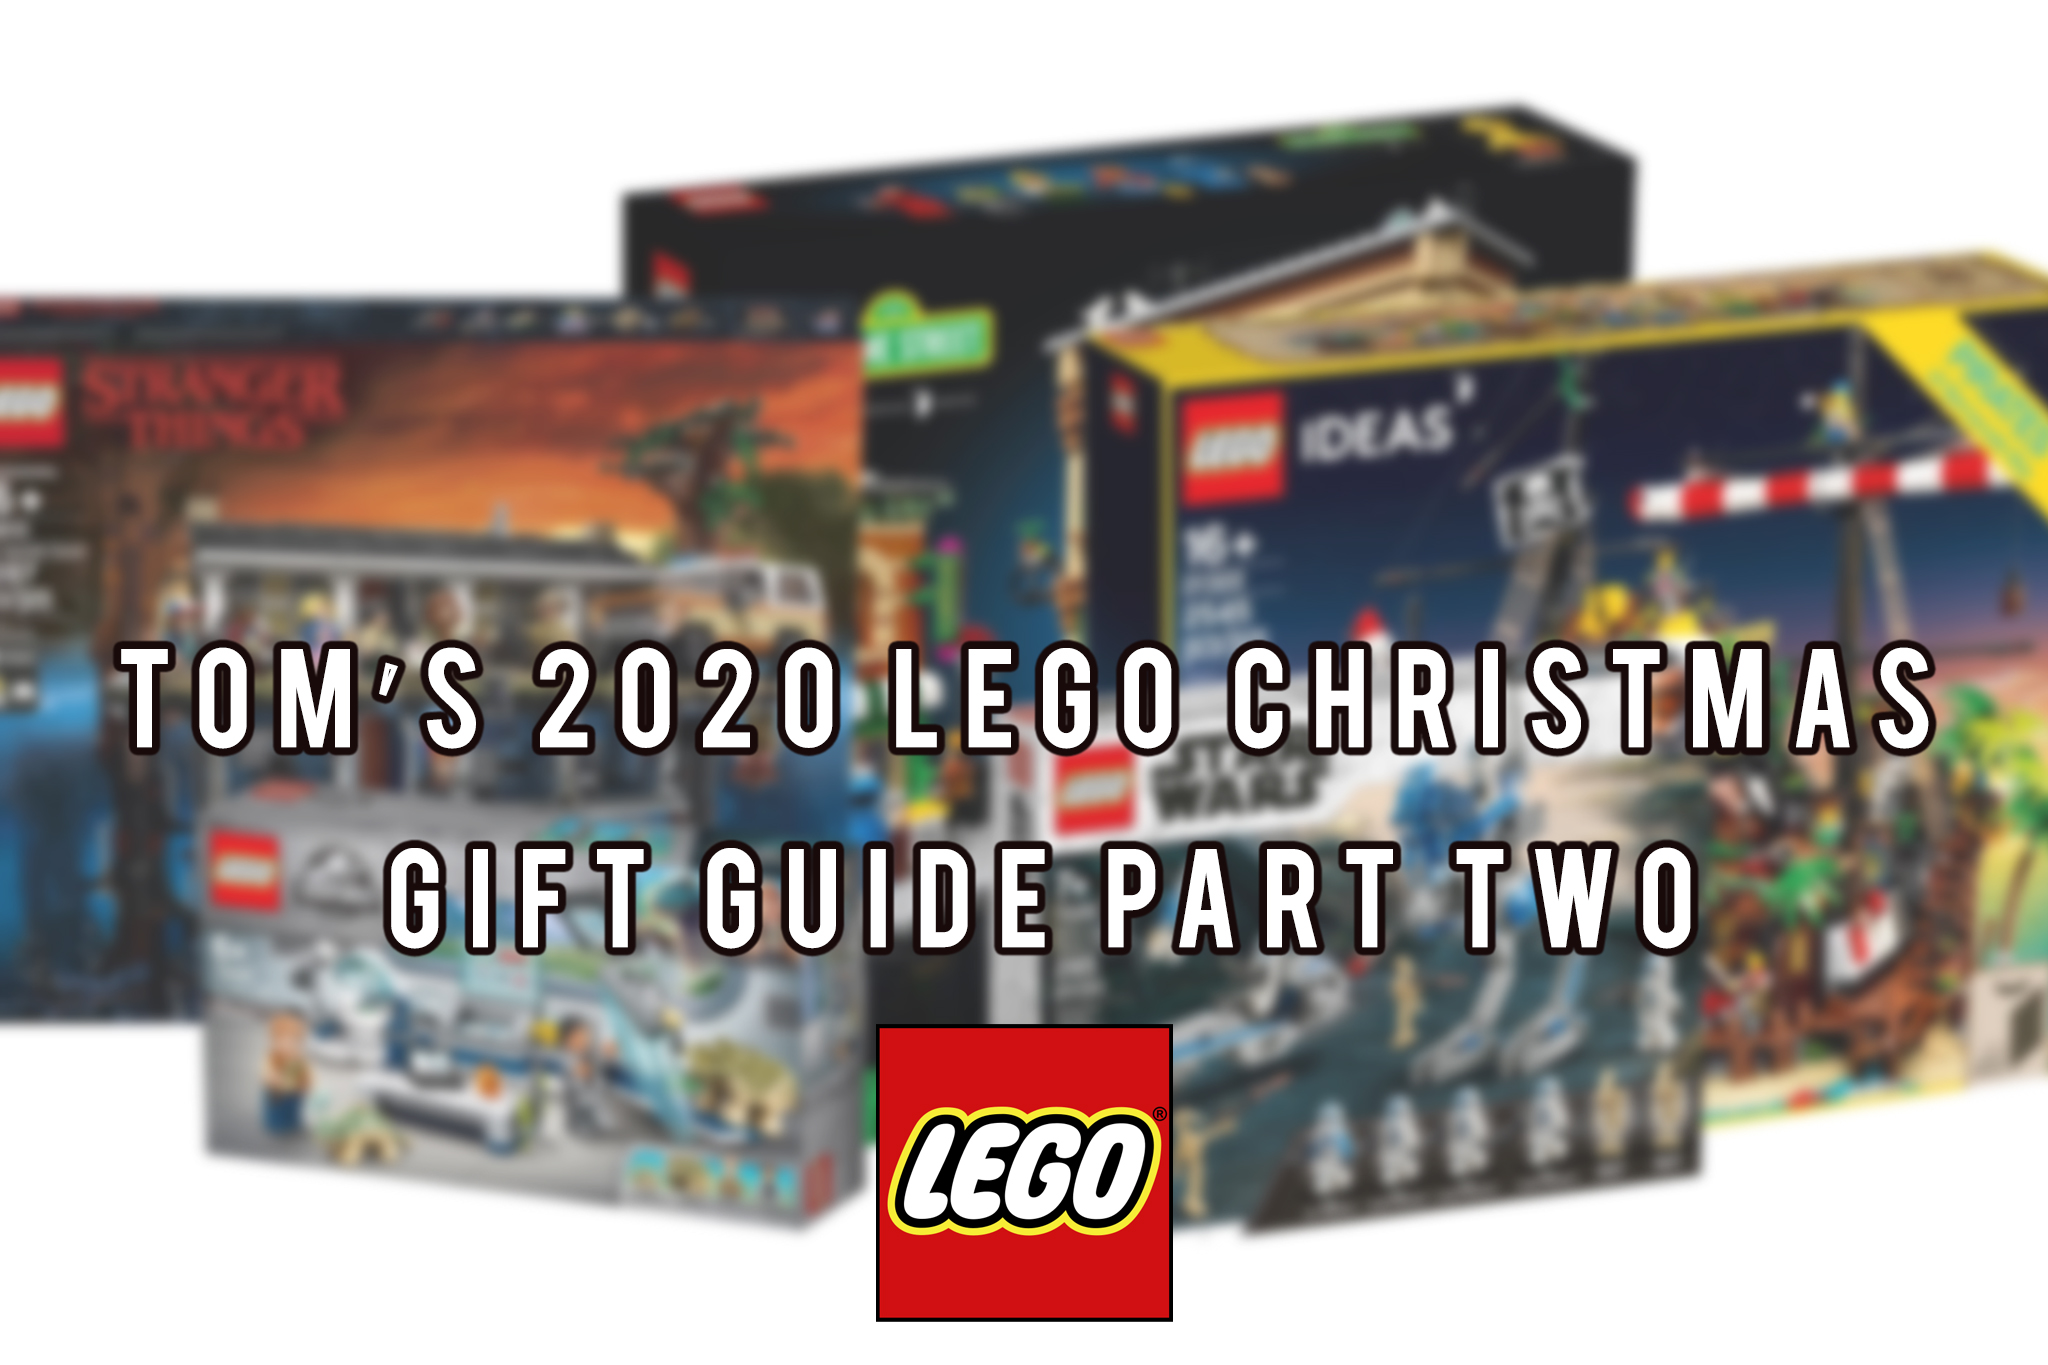 LEGO Christmas Gift Guide - Header Image